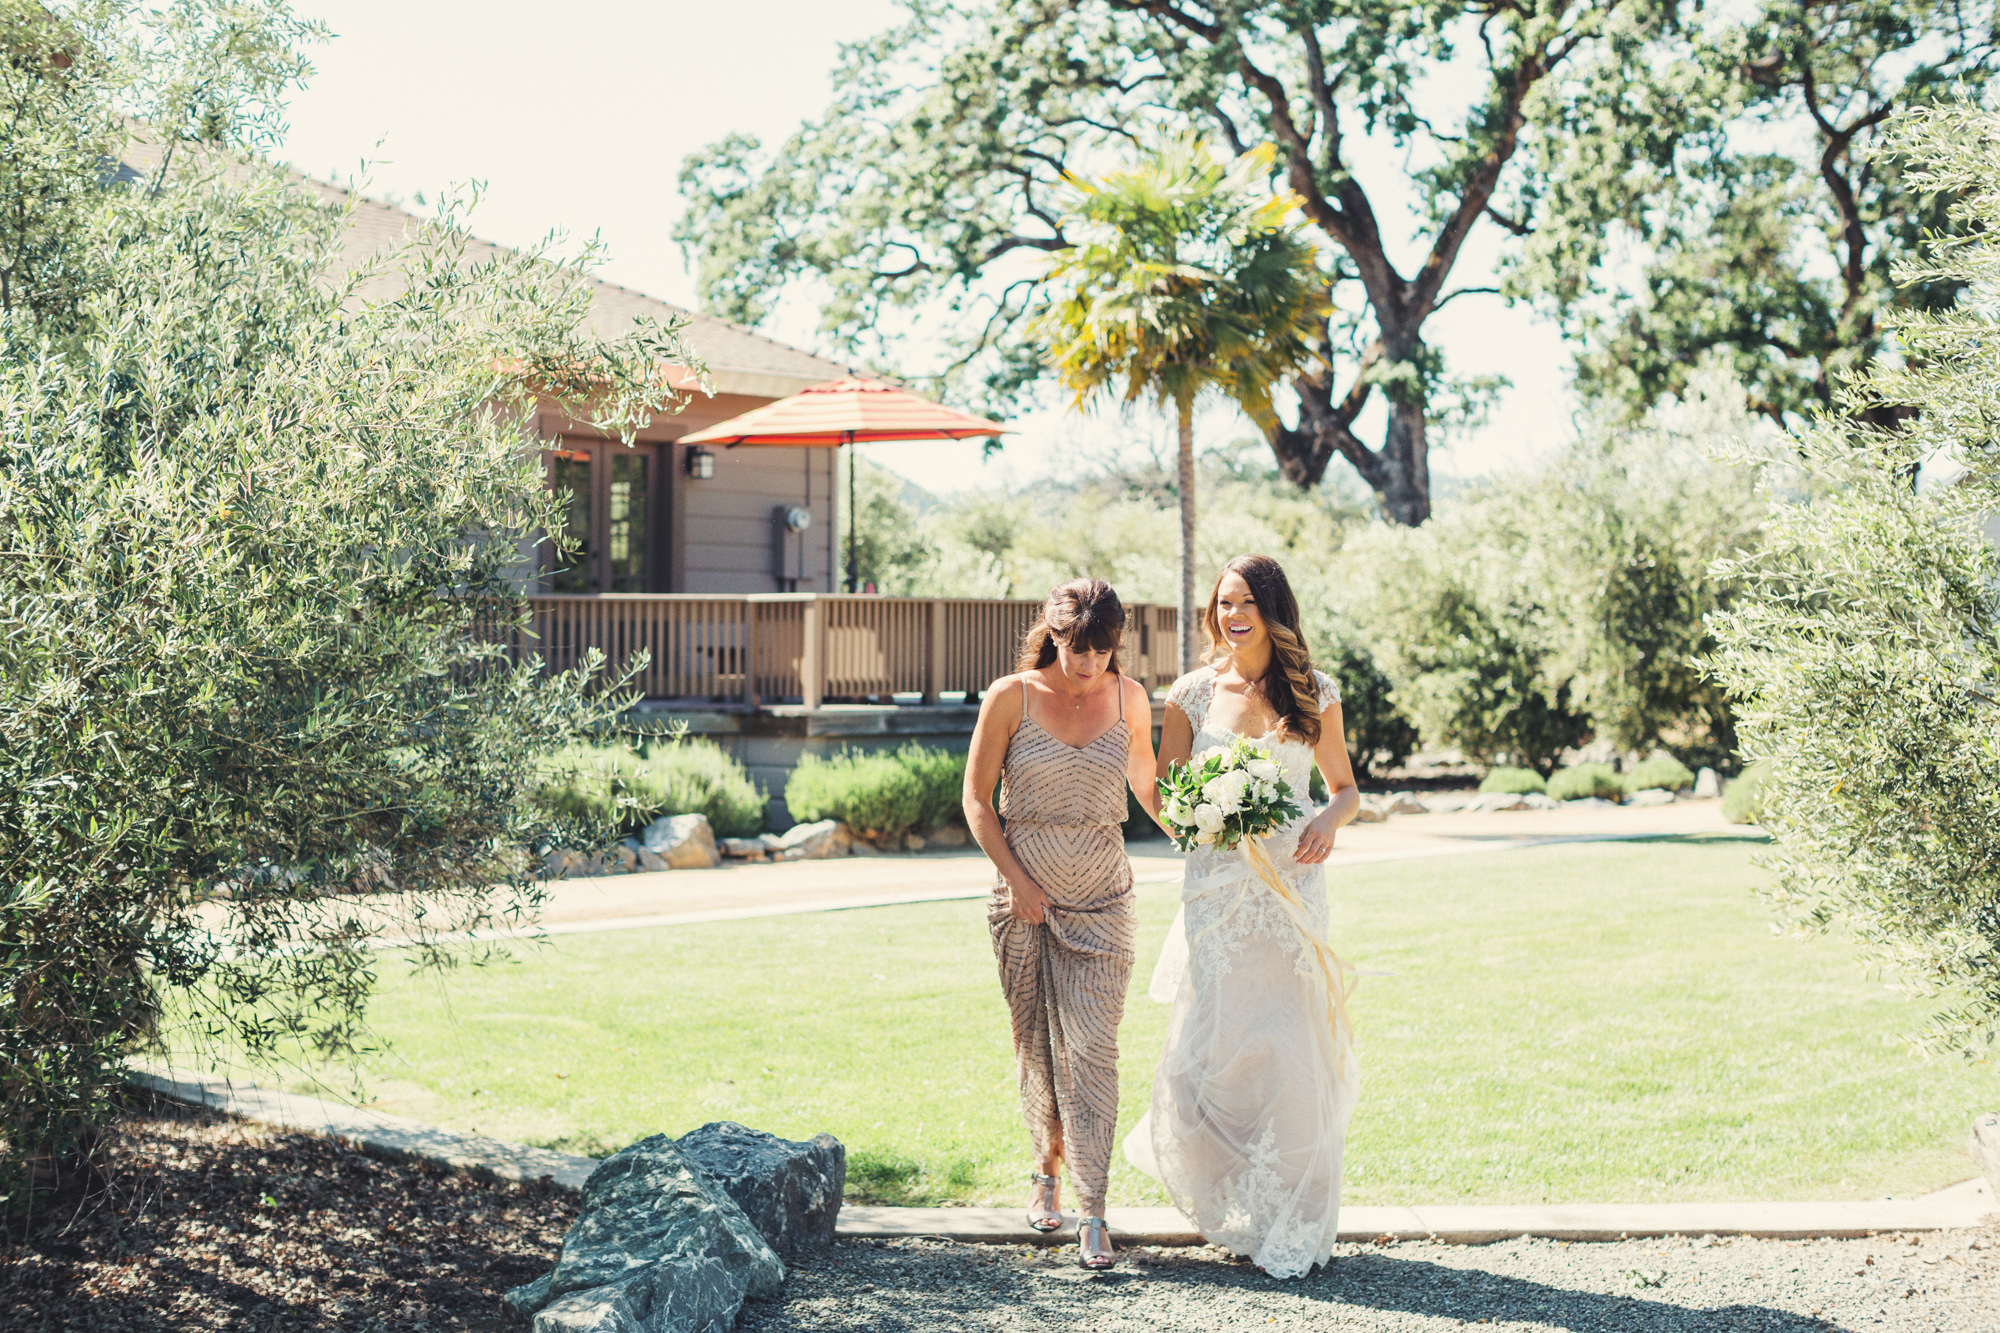 Wedding in Campovida @Anne-Claire Brun 32